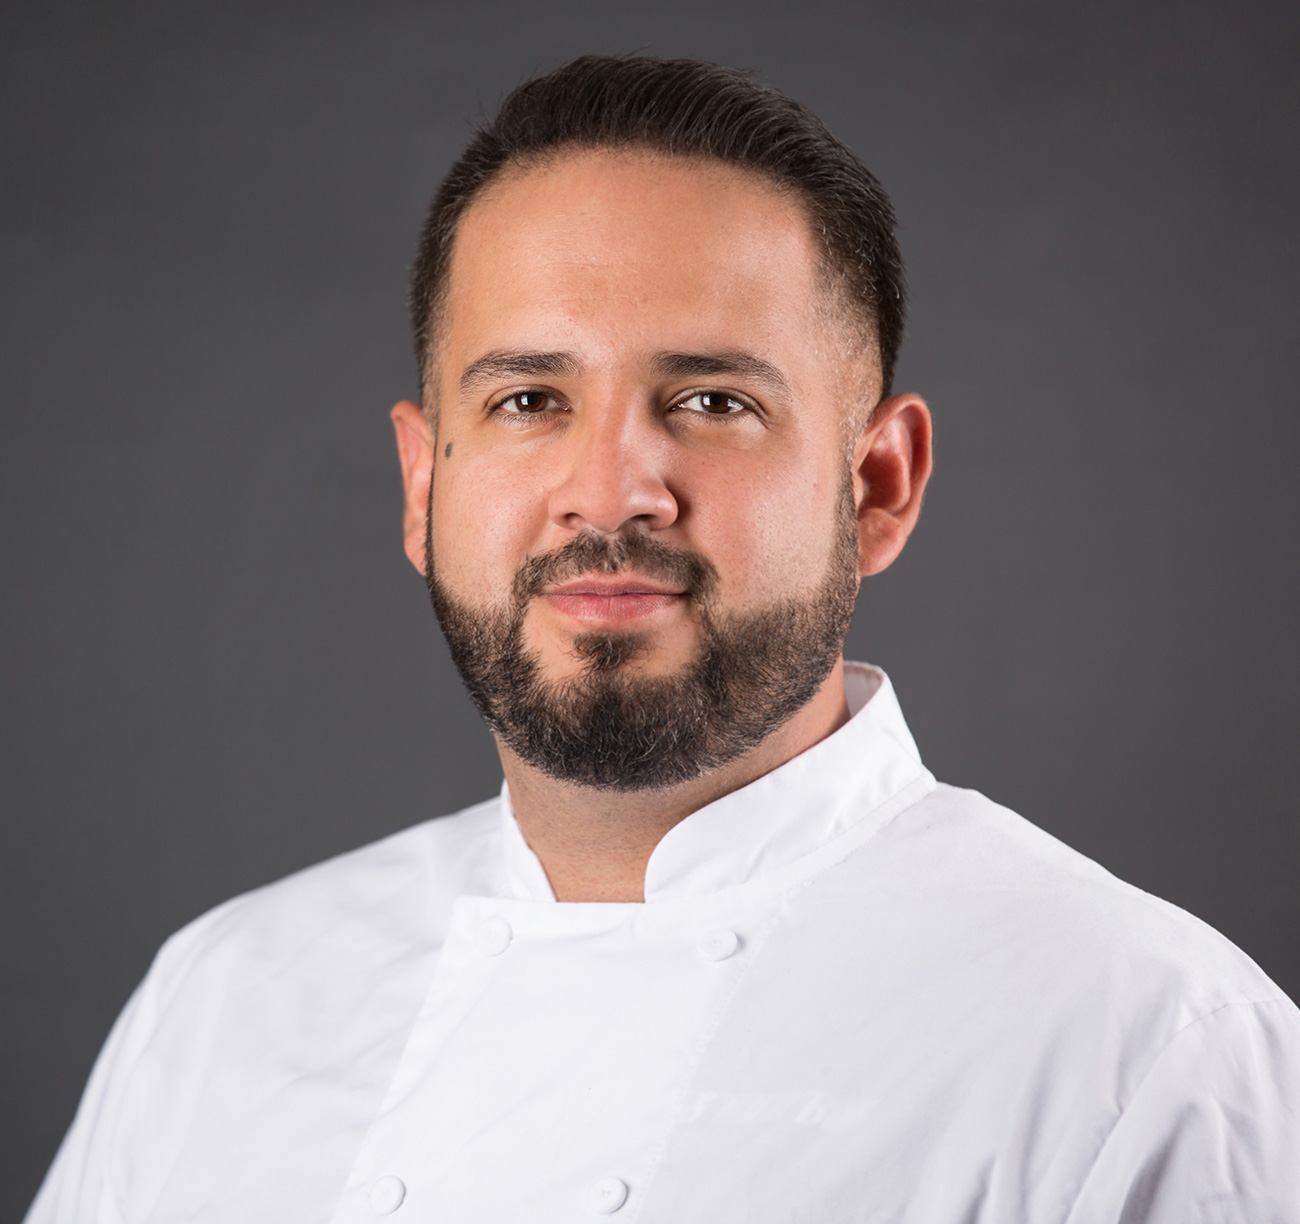 Chef Headshot Las Vegas